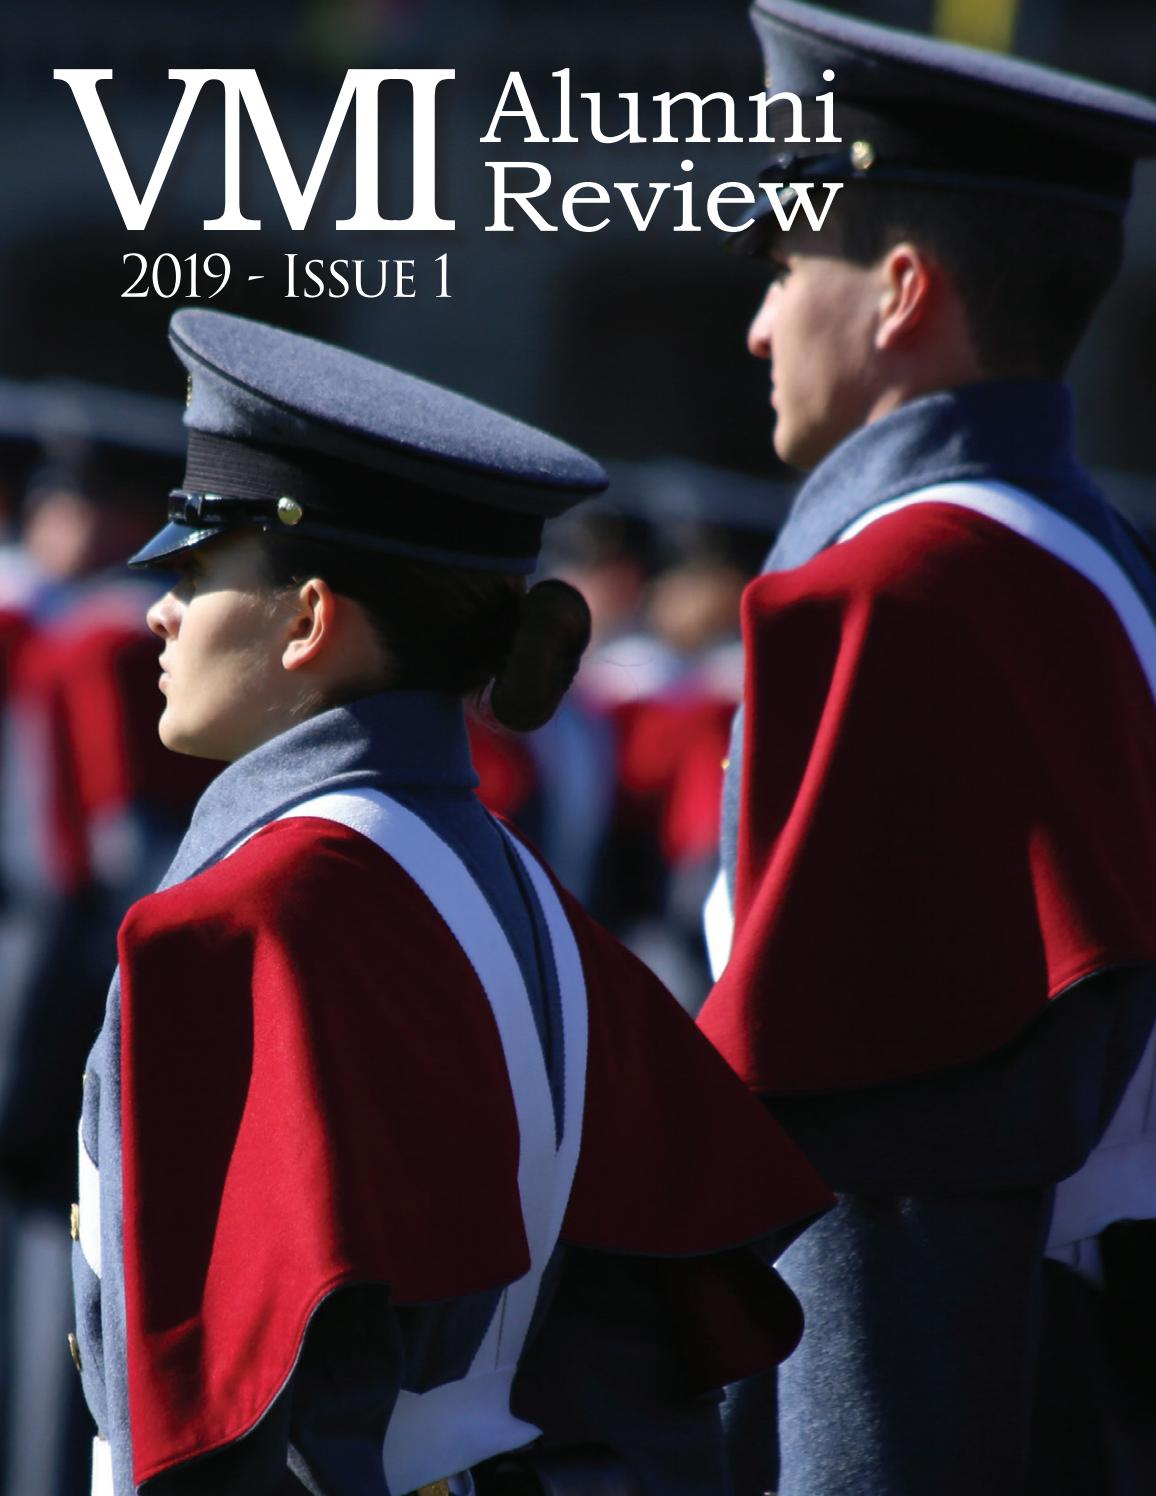 4961abda93d 2019-Issue 1 Alumni Review by VMI Alumni Agencies - issuu